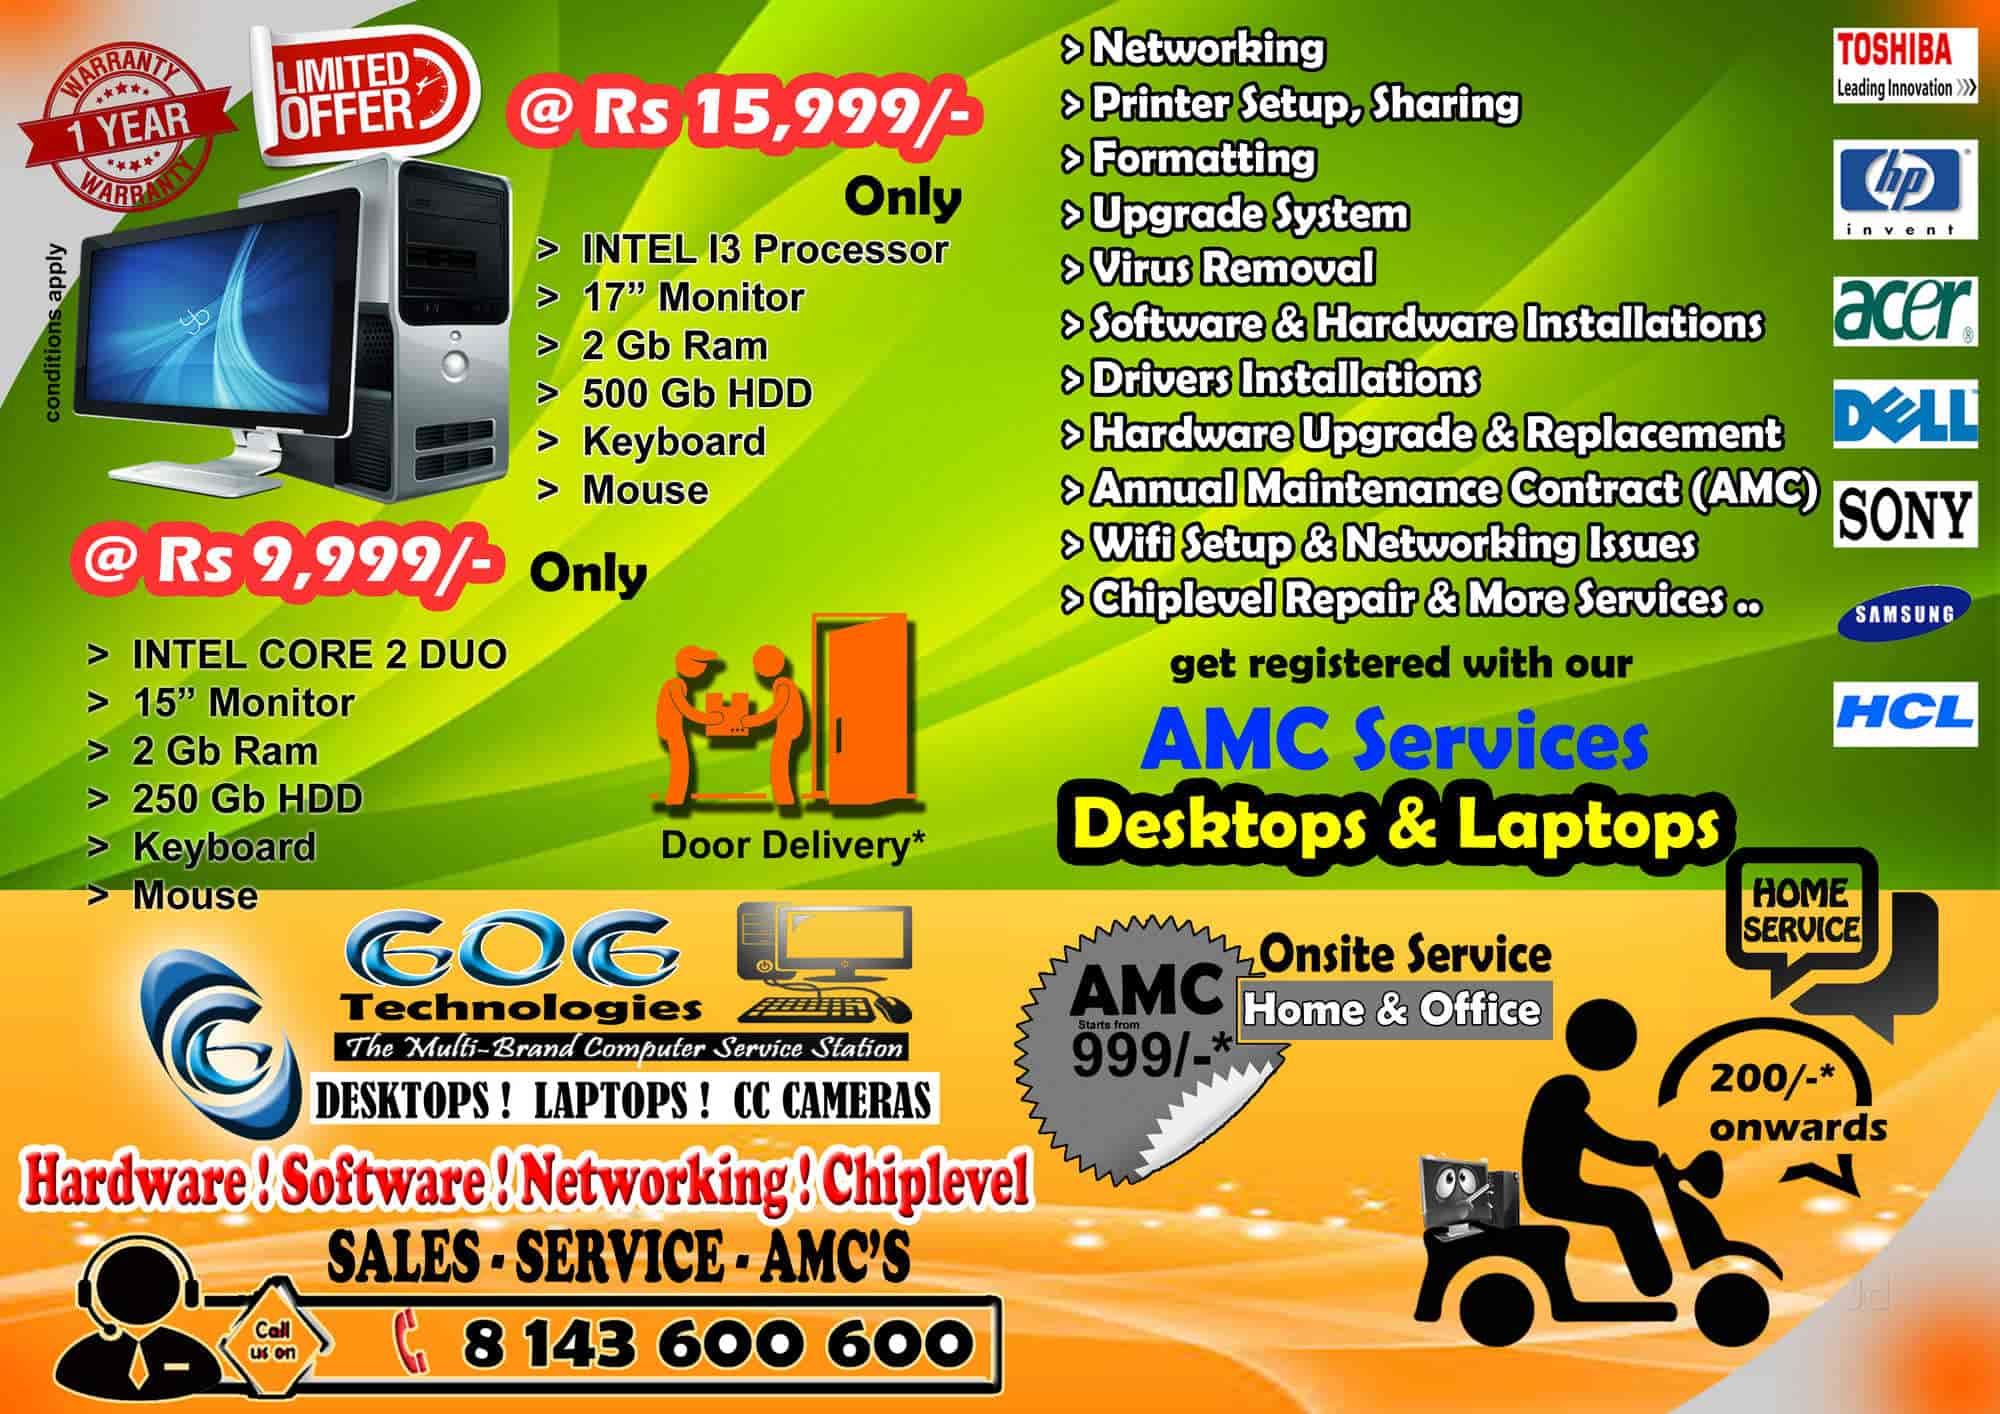 GOG Technologies, Ramanthapur - CCTV Dealers in Hyderabad - Justdial